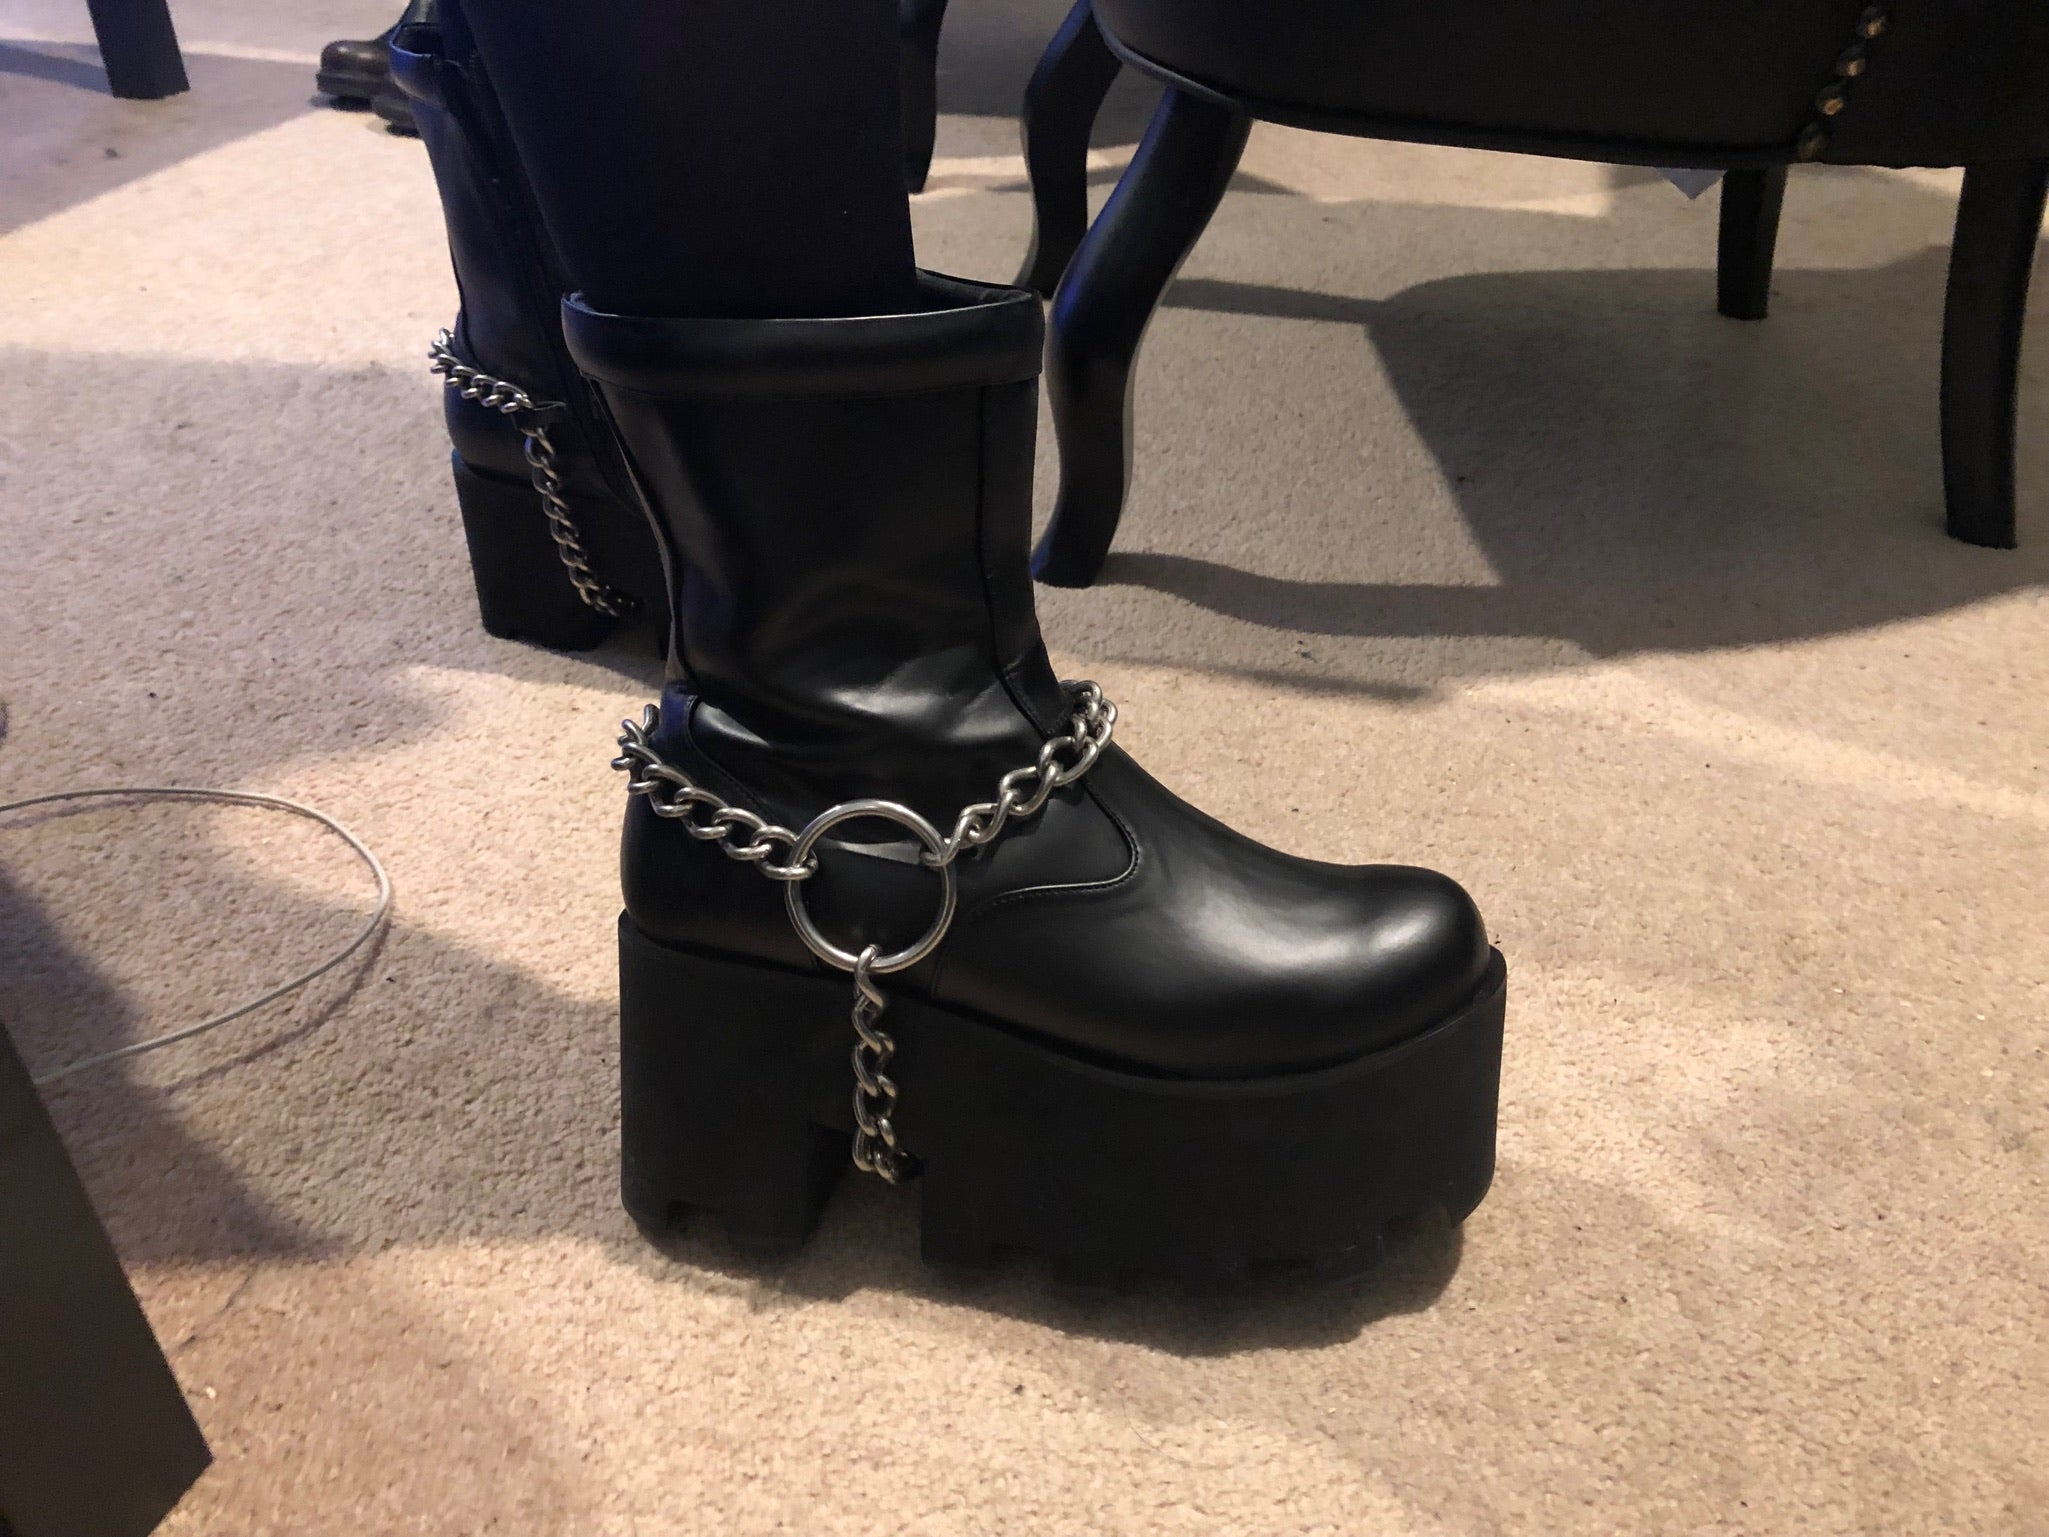 Stainless Steel Boot Chain show on boots